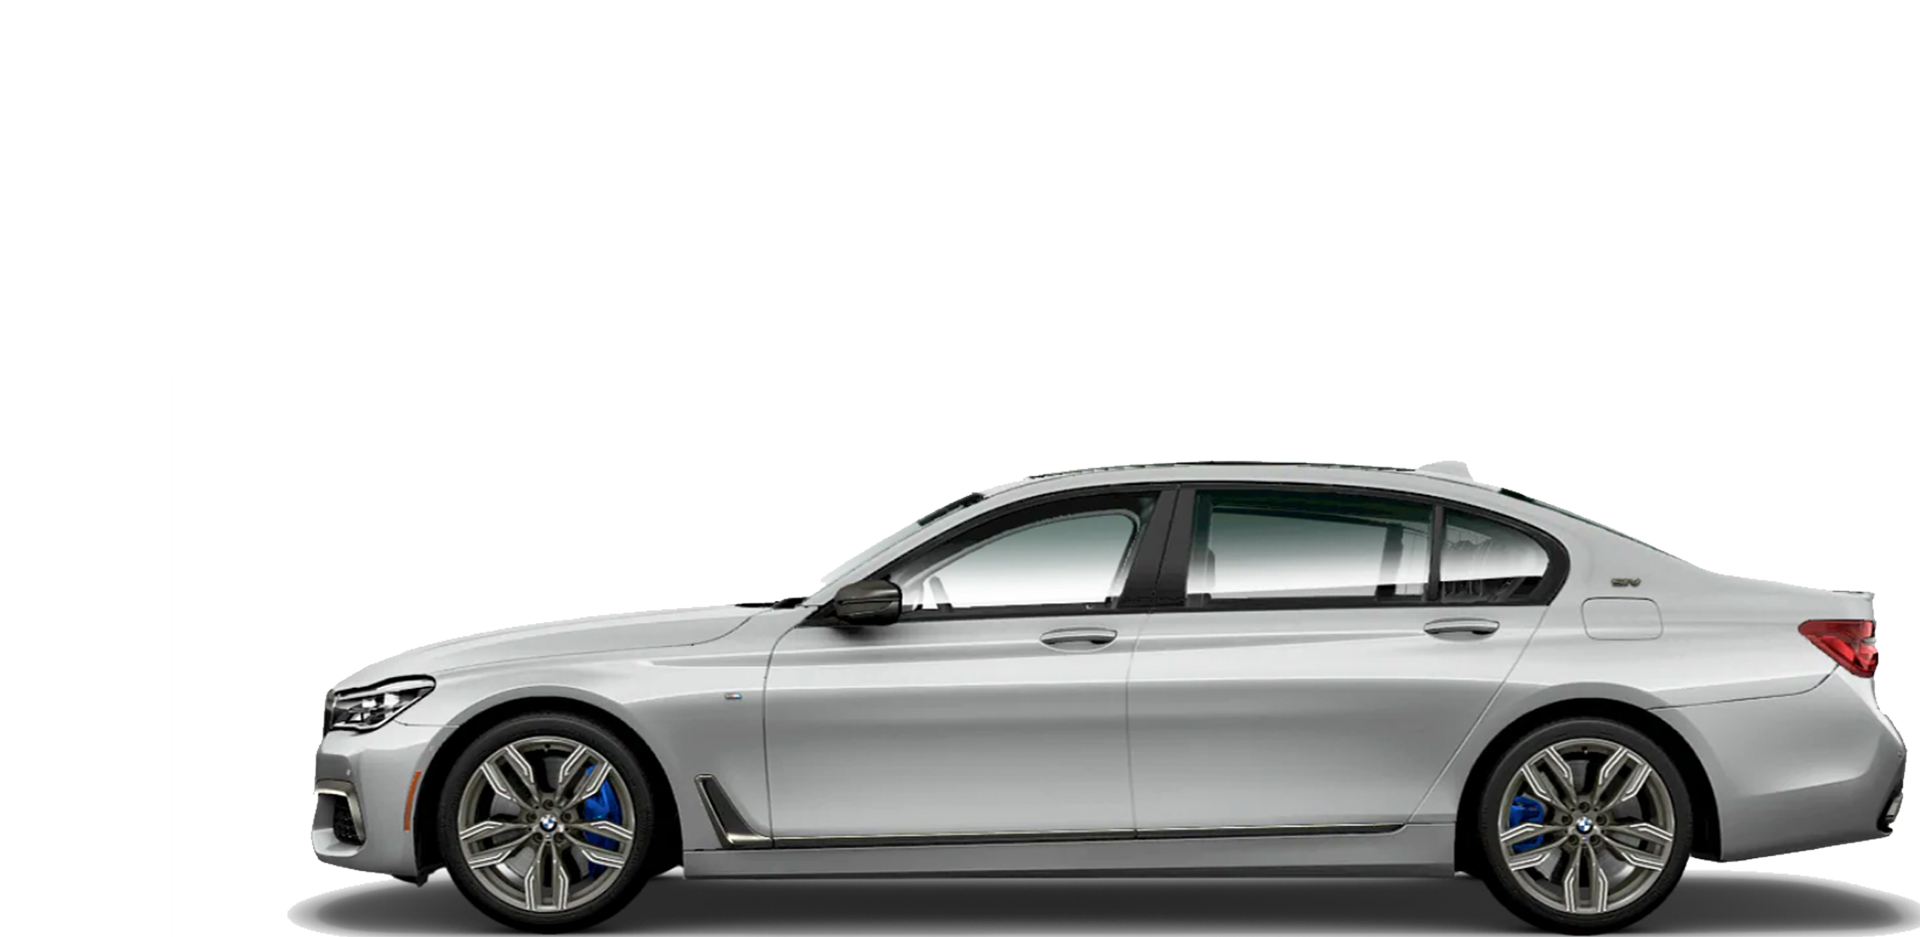 7 Series BMW Century West BMW